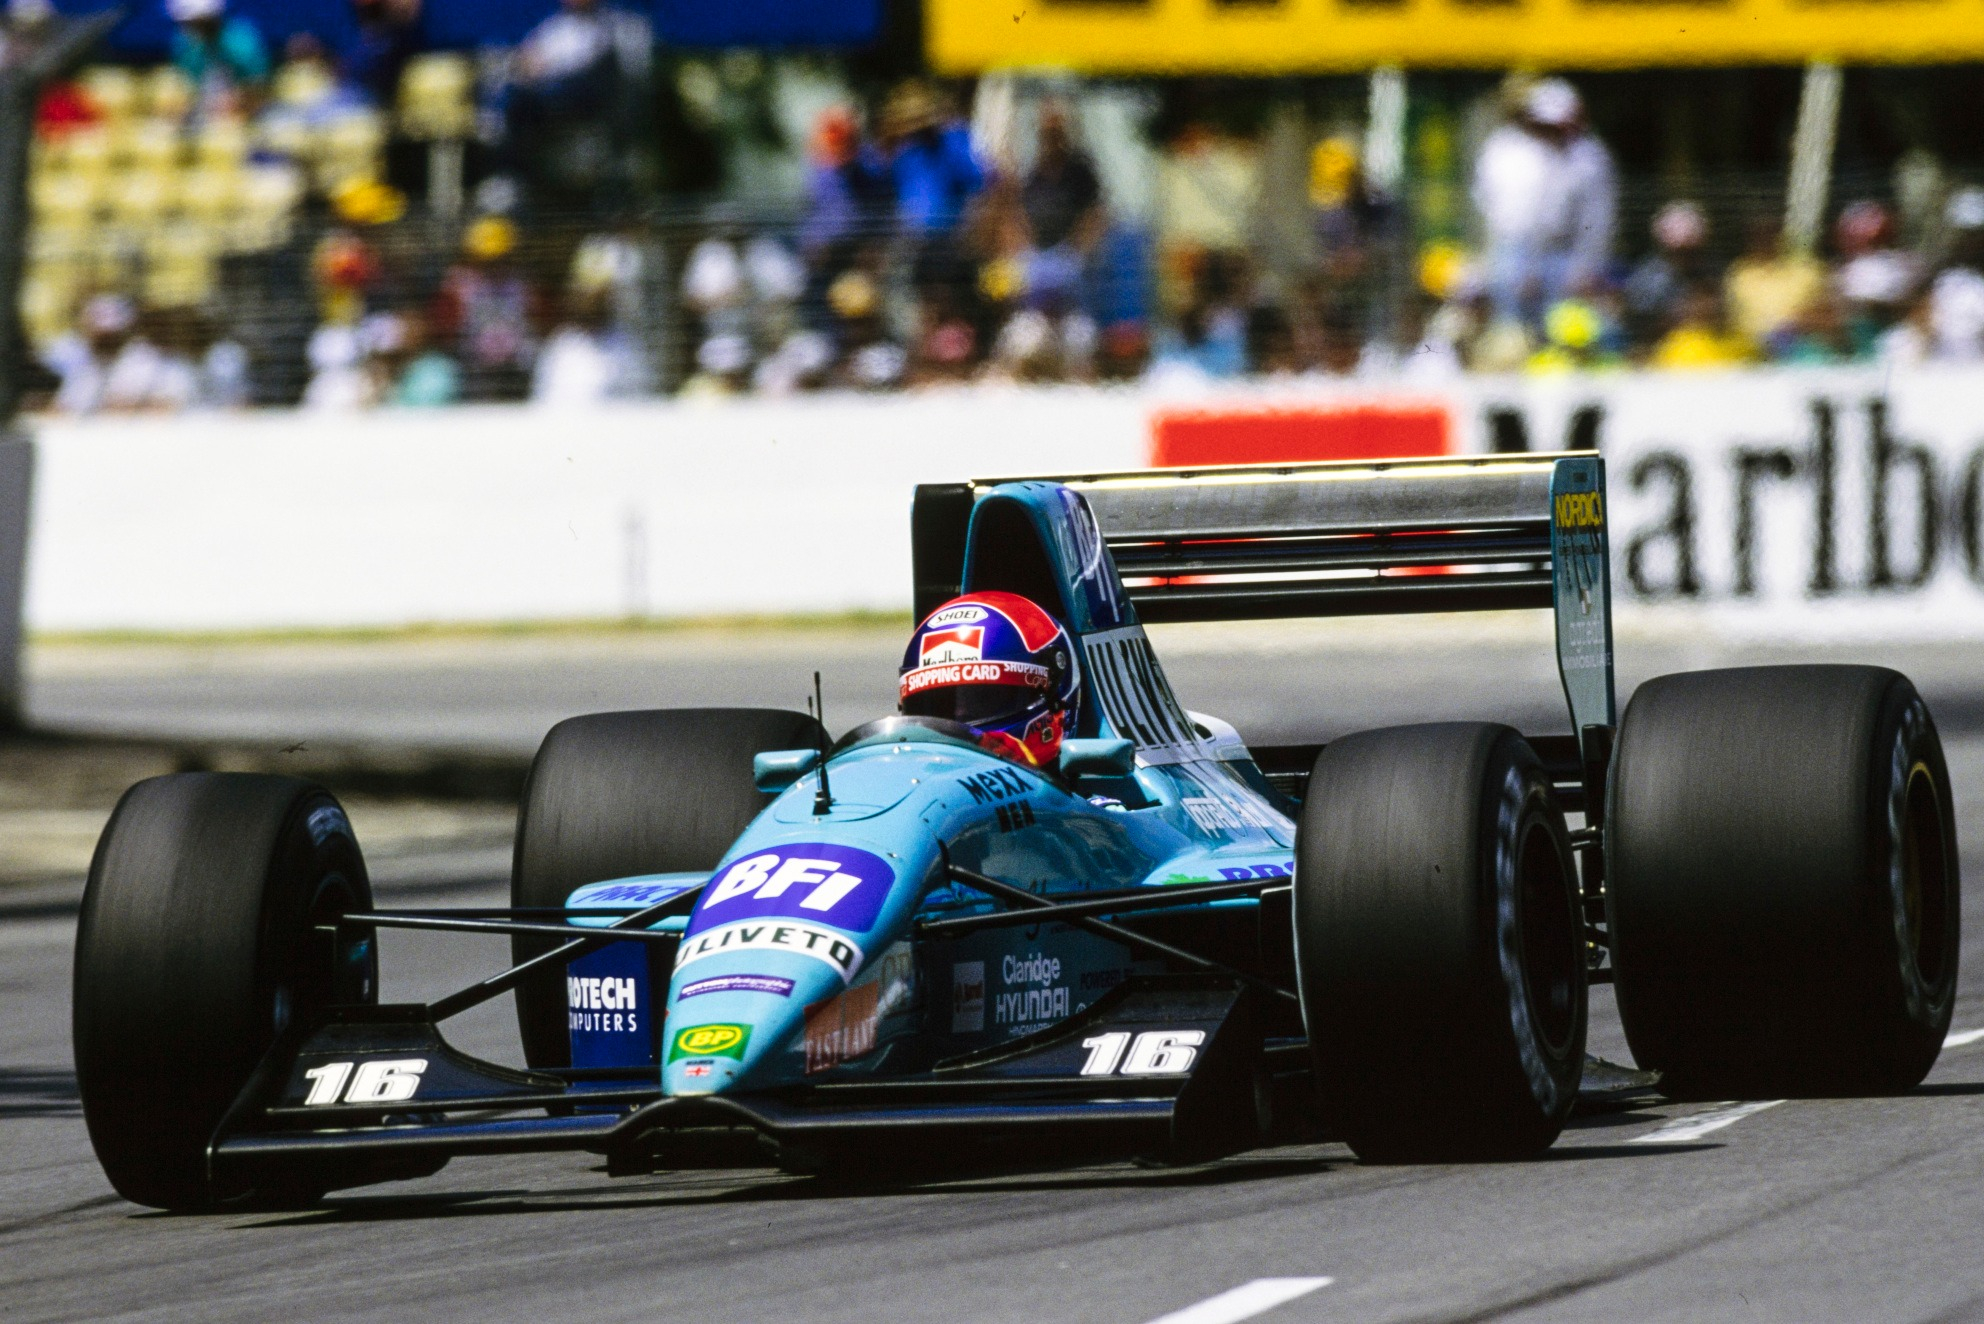 Lammers struggled to the finish in Adelaide, classified 12th in what was to be his final GP